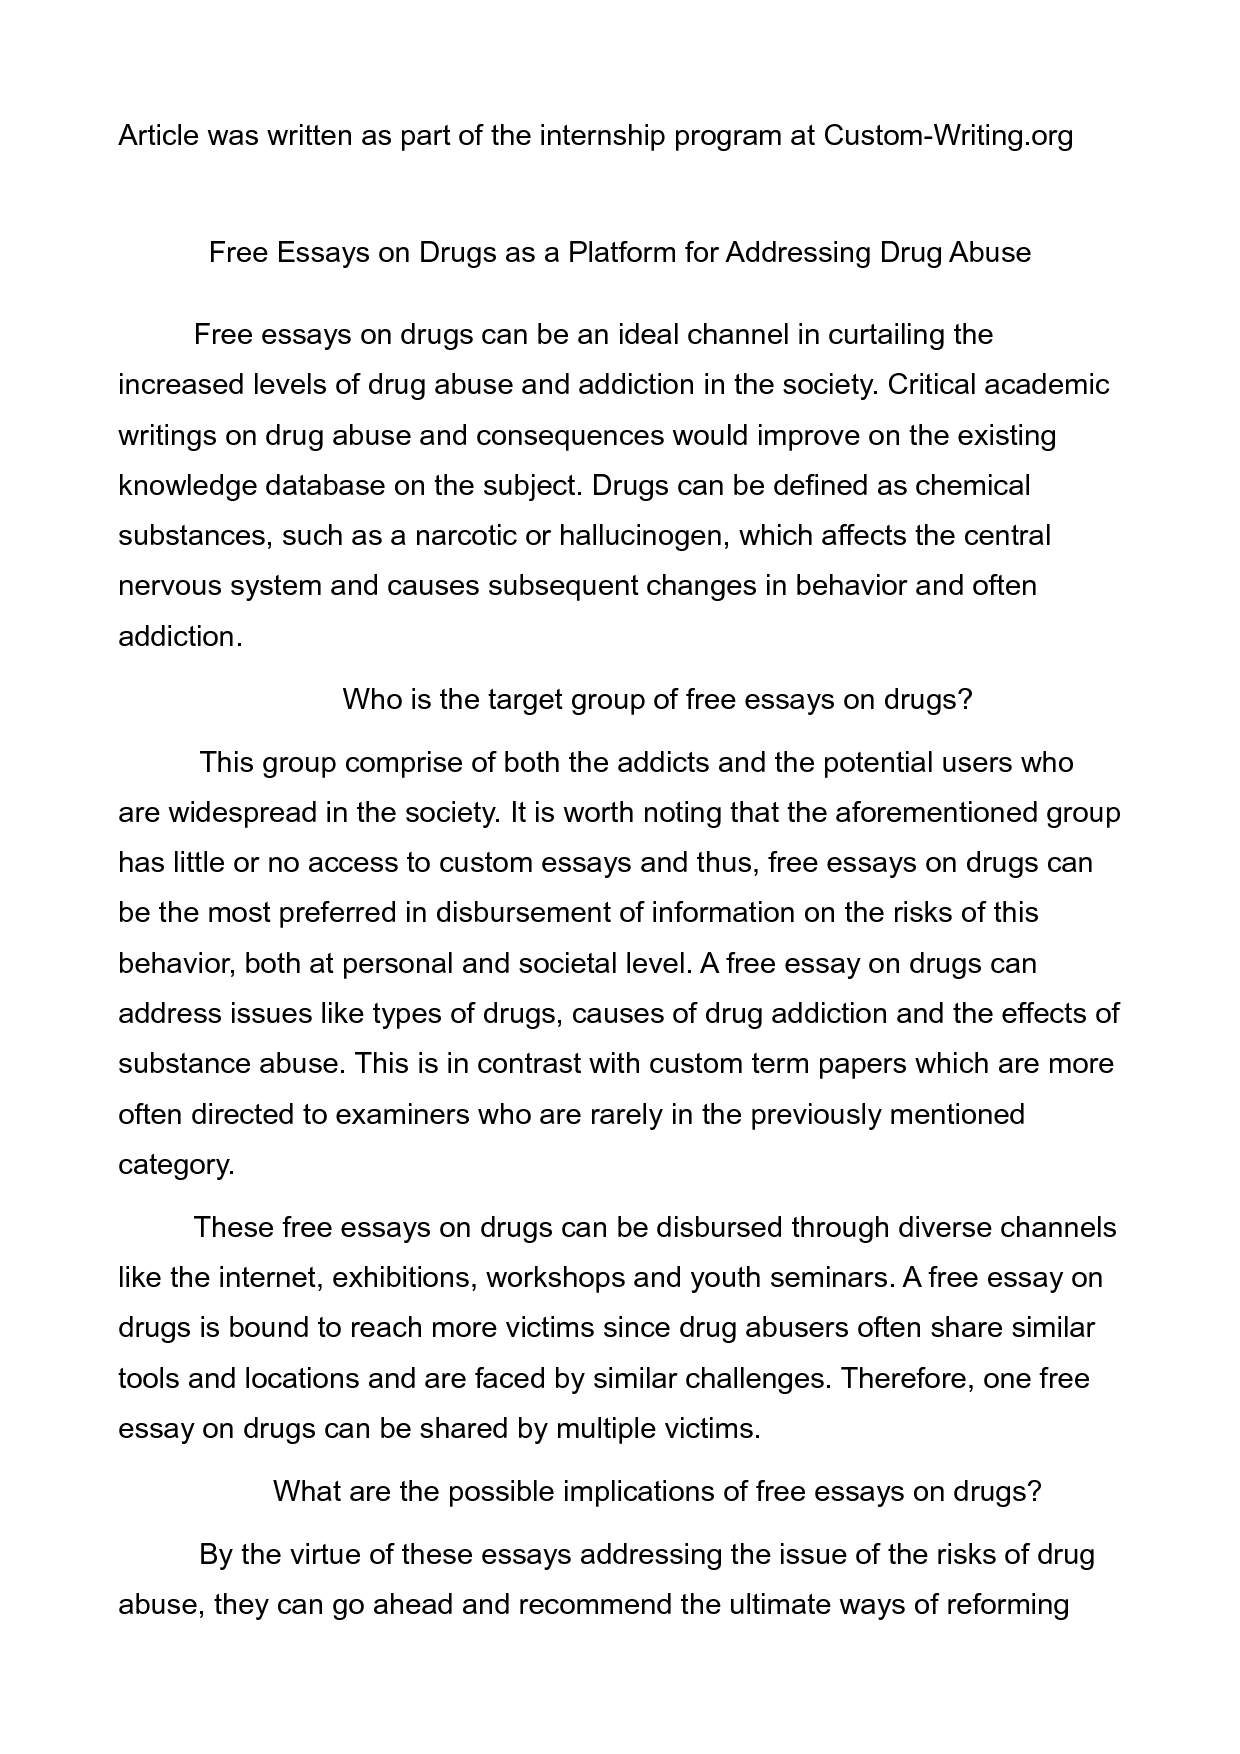 009 Argumentative Essay About Drugs Amazing Introduction Pdf Definition Format & Examples Topics Education Full